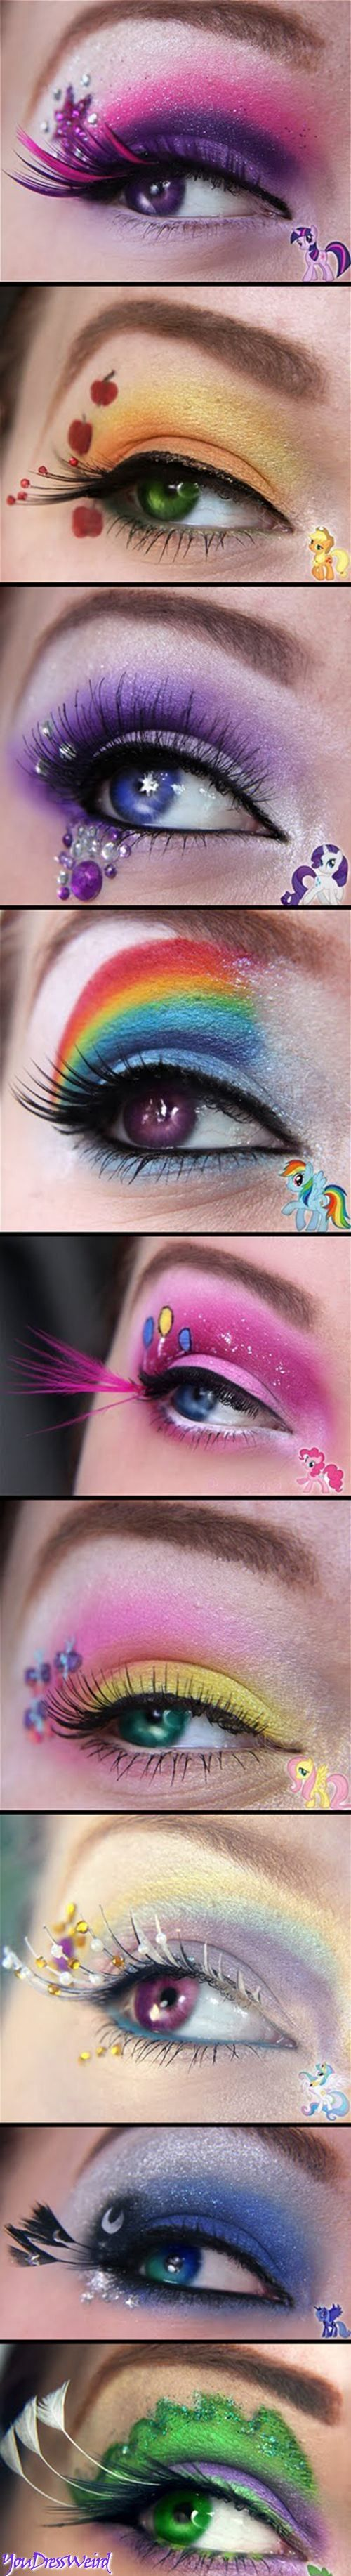 my little pony                                                                                                                                                                                 Más